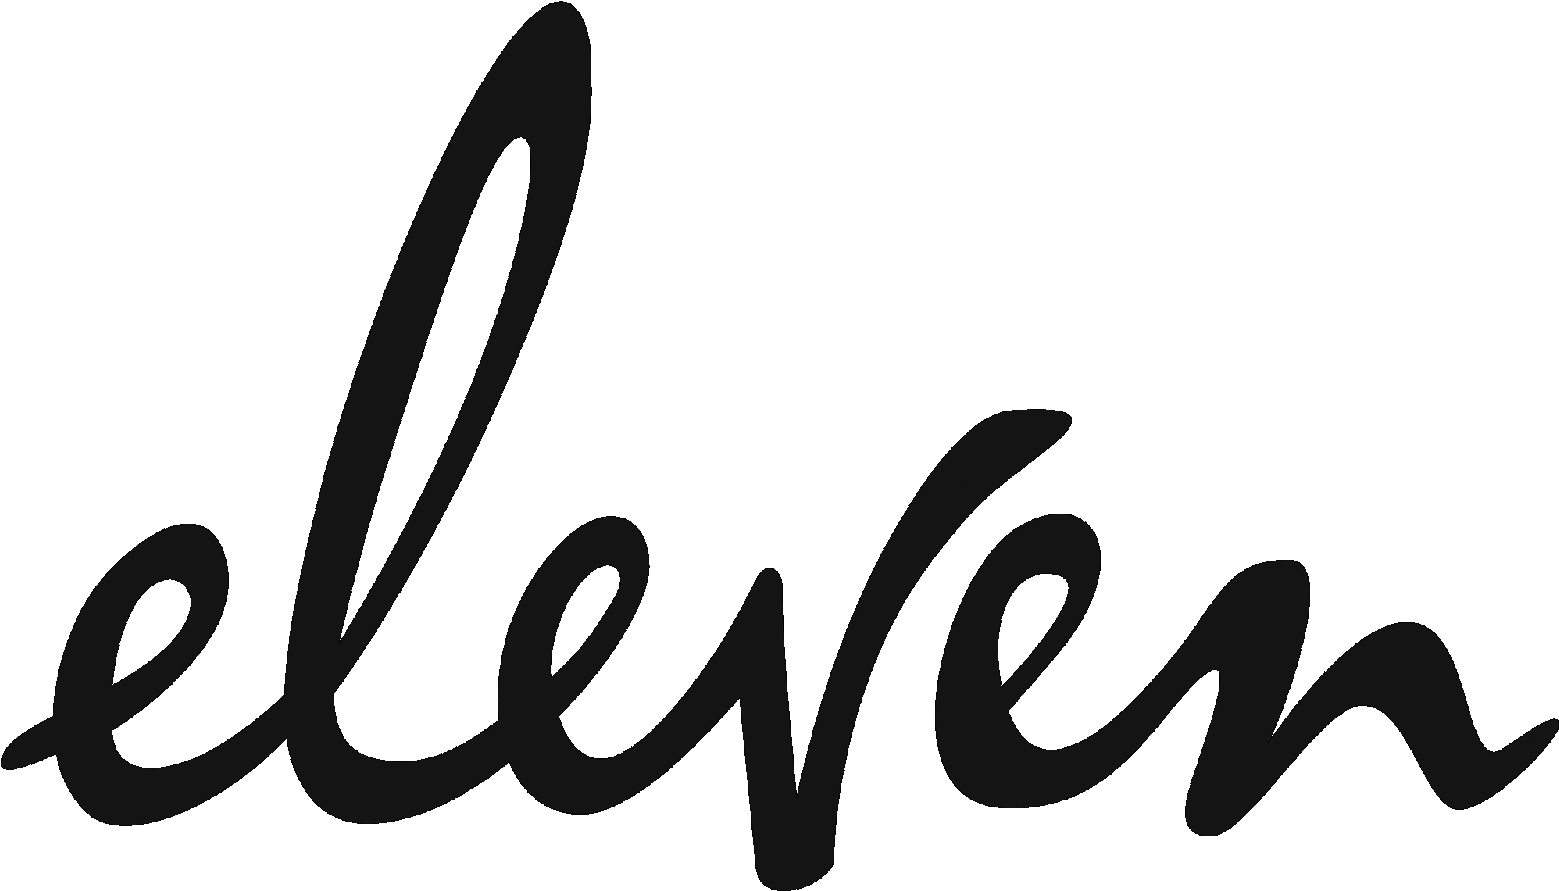 Eleven Years Logo Clipart.